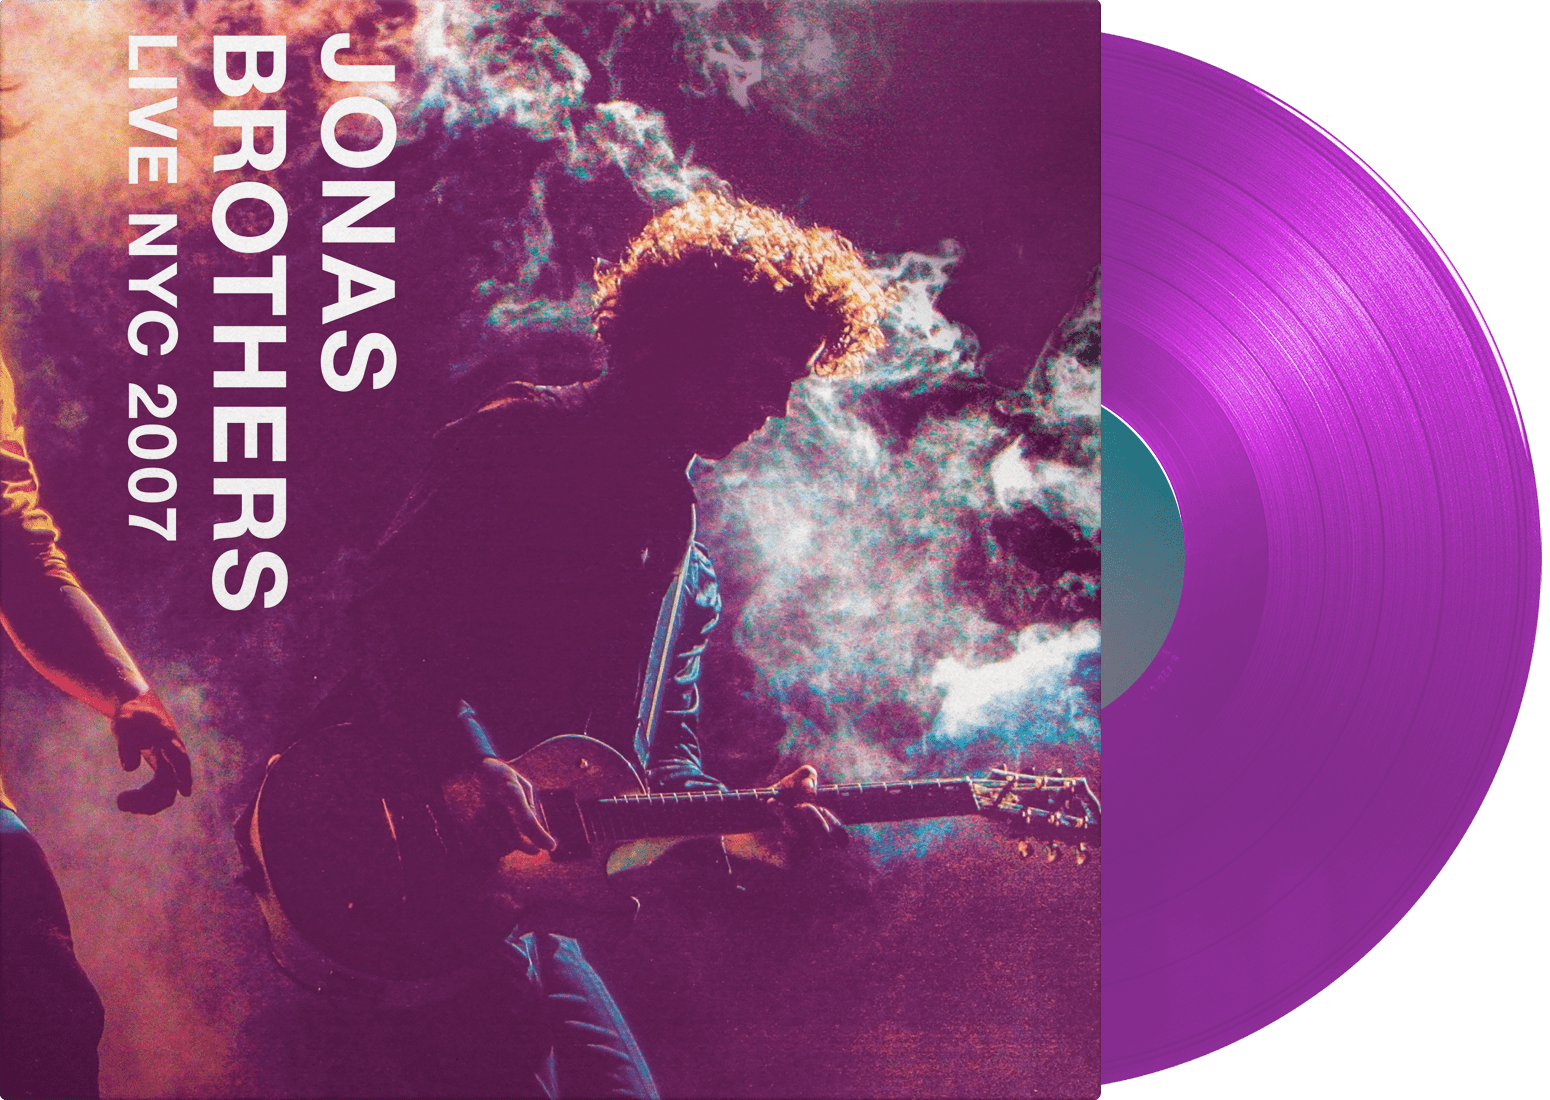 Jonas Brothers - Live NYC 2007 LP (Purple with smoke)